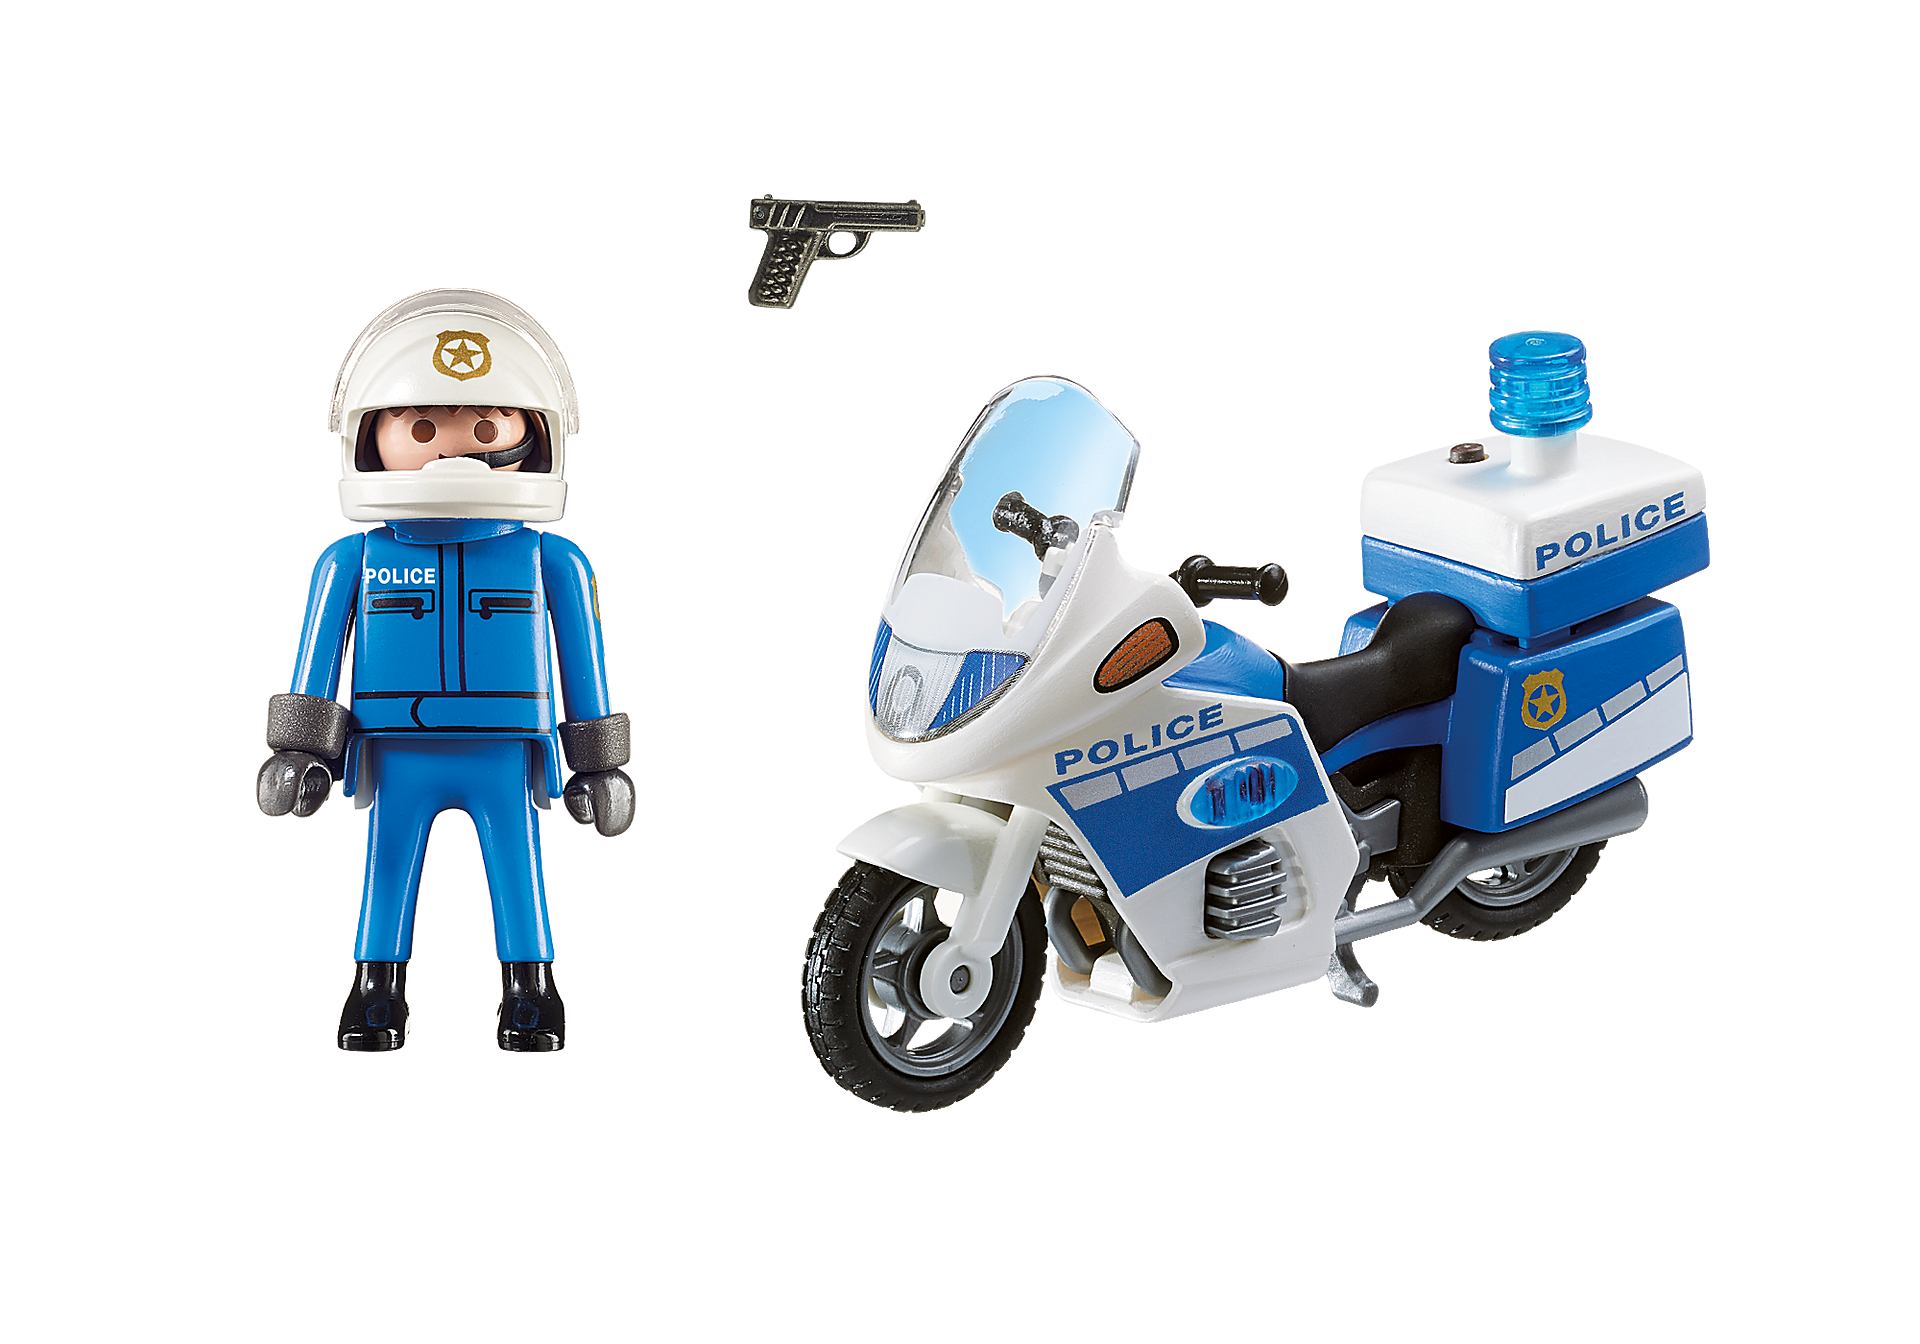 http://media.playmobil.com/i/playmobil/6923_product_box_back/Policía con Moto y Luces LED